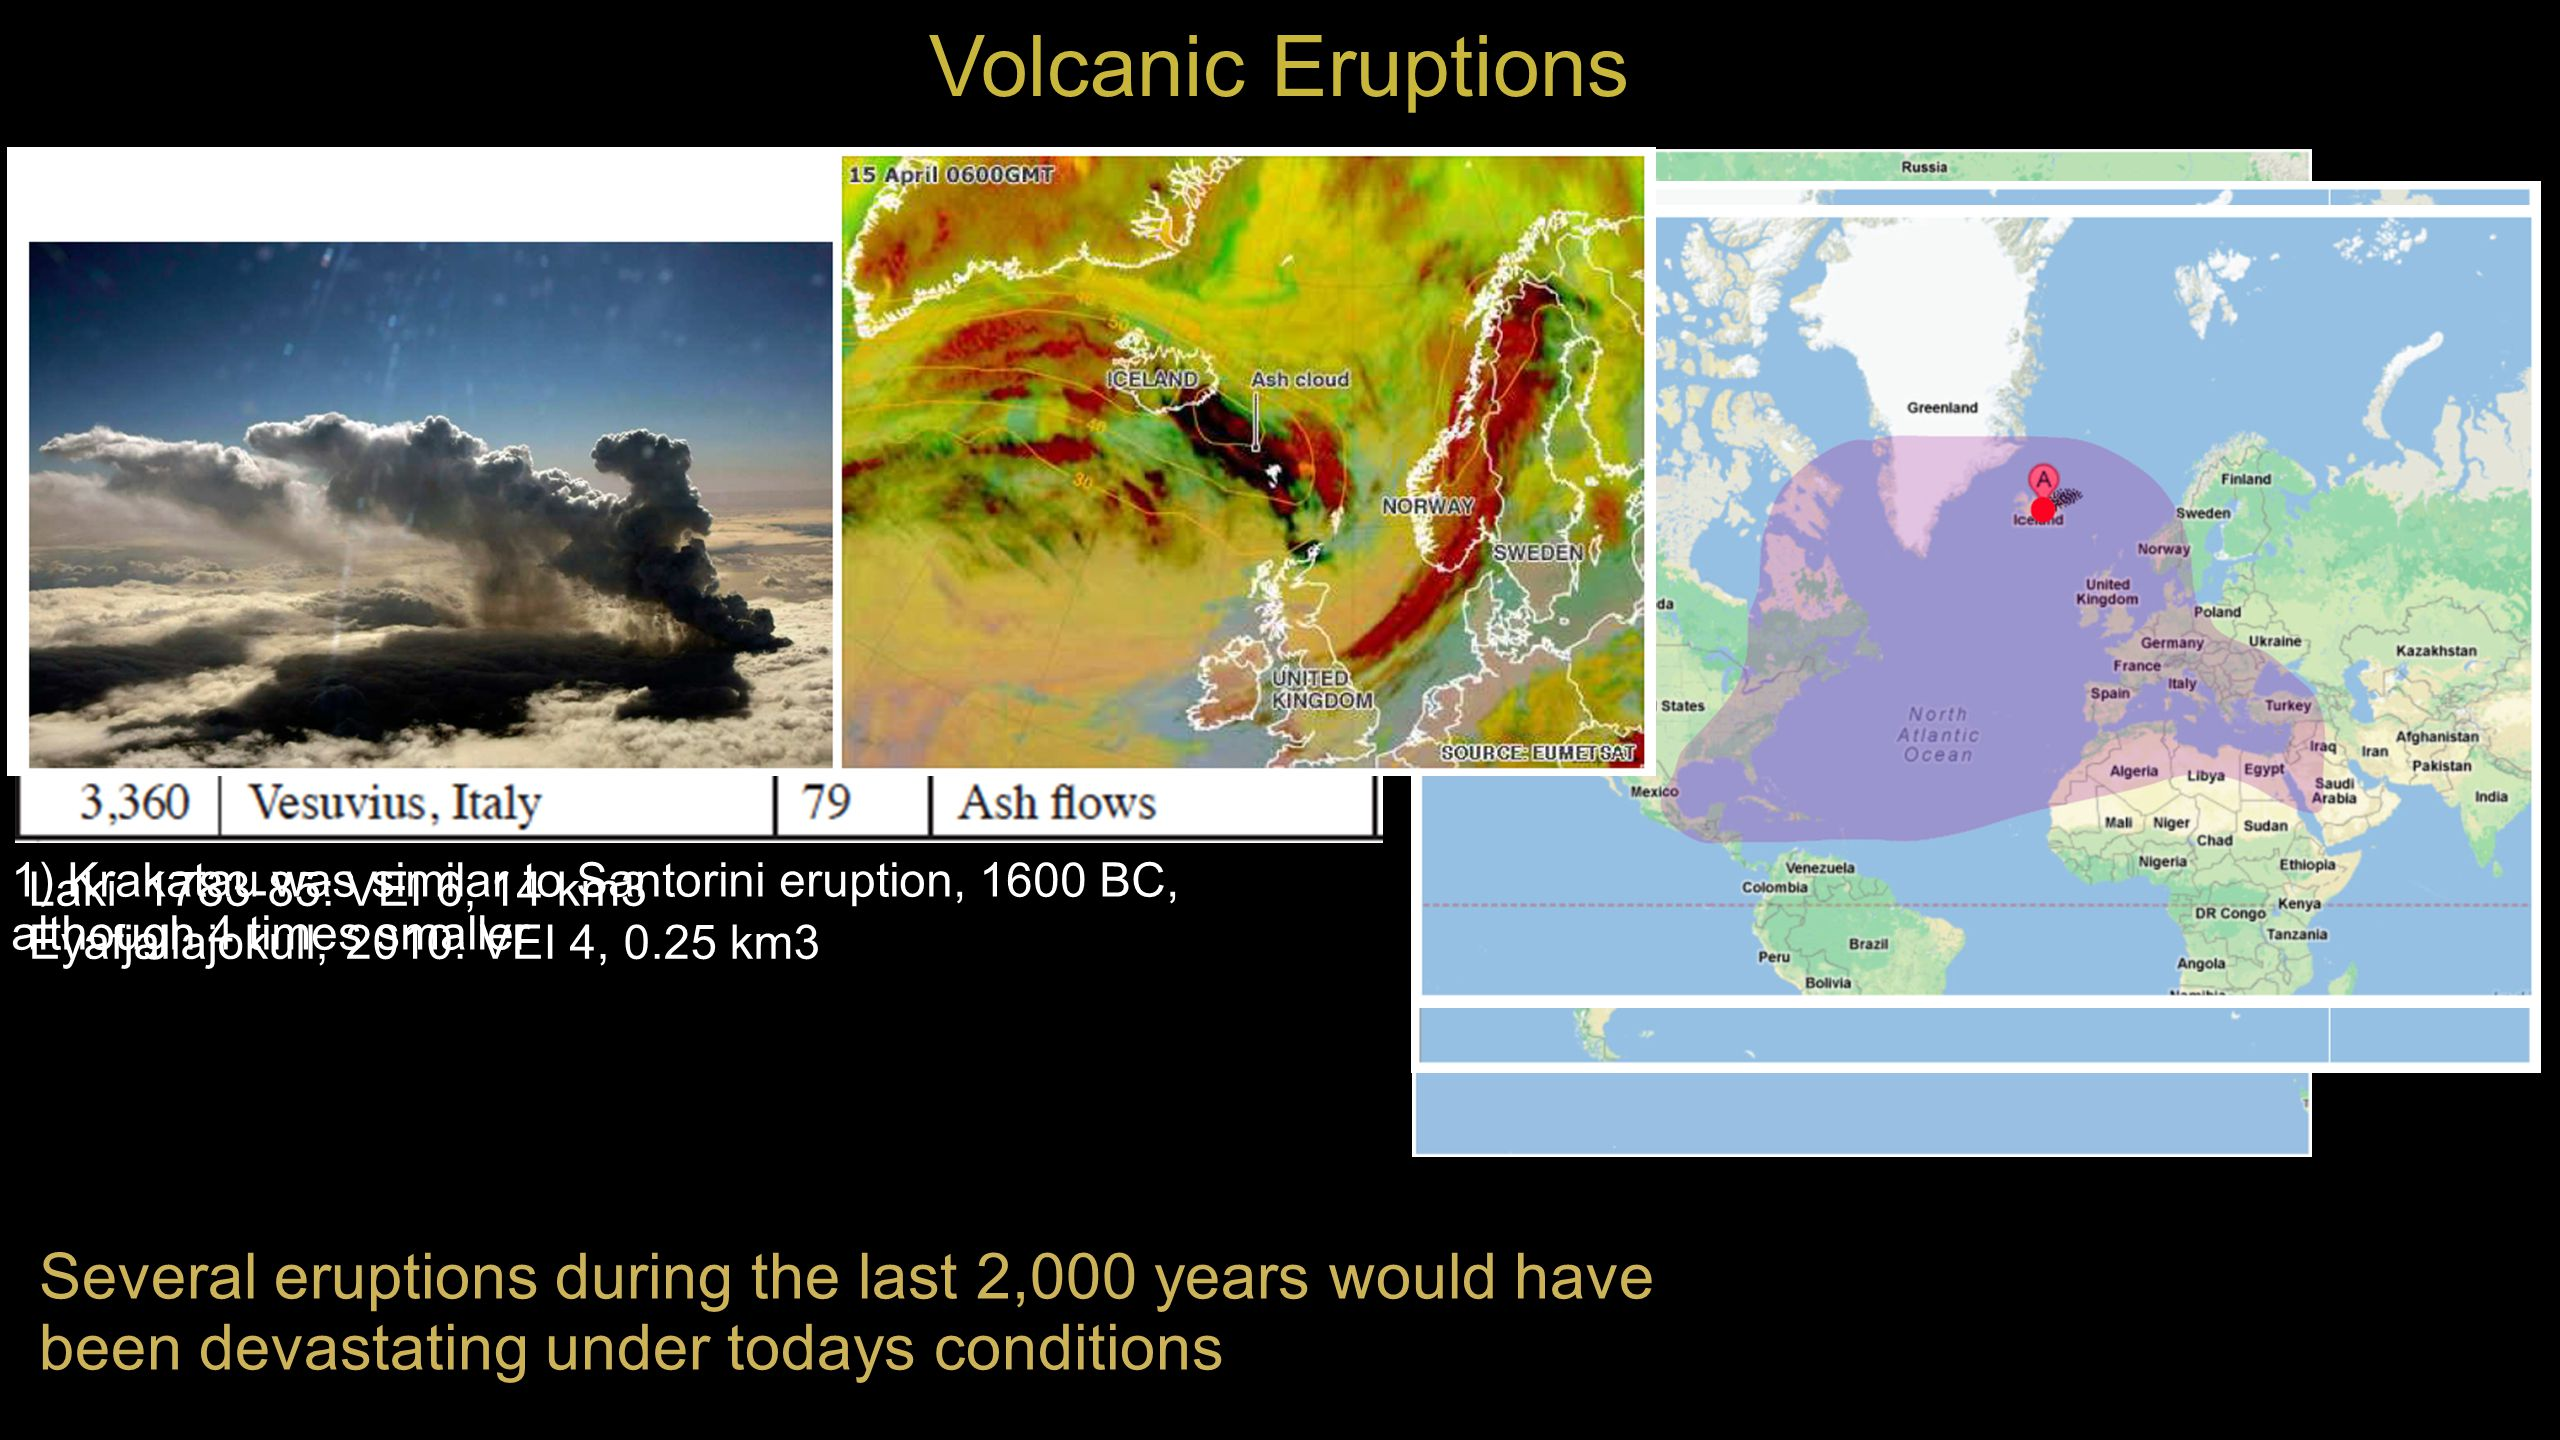 1) Krakatau was similar to Santorini eruption, 1600 BC, although 4 times smaller Laki 1783-85: VEI 6, 14 km3 Eyafjallajokull, 2010: VEI 4, 0.25 km3 Several eruptions during the last 2,000 years would have been devastating under todays conditions